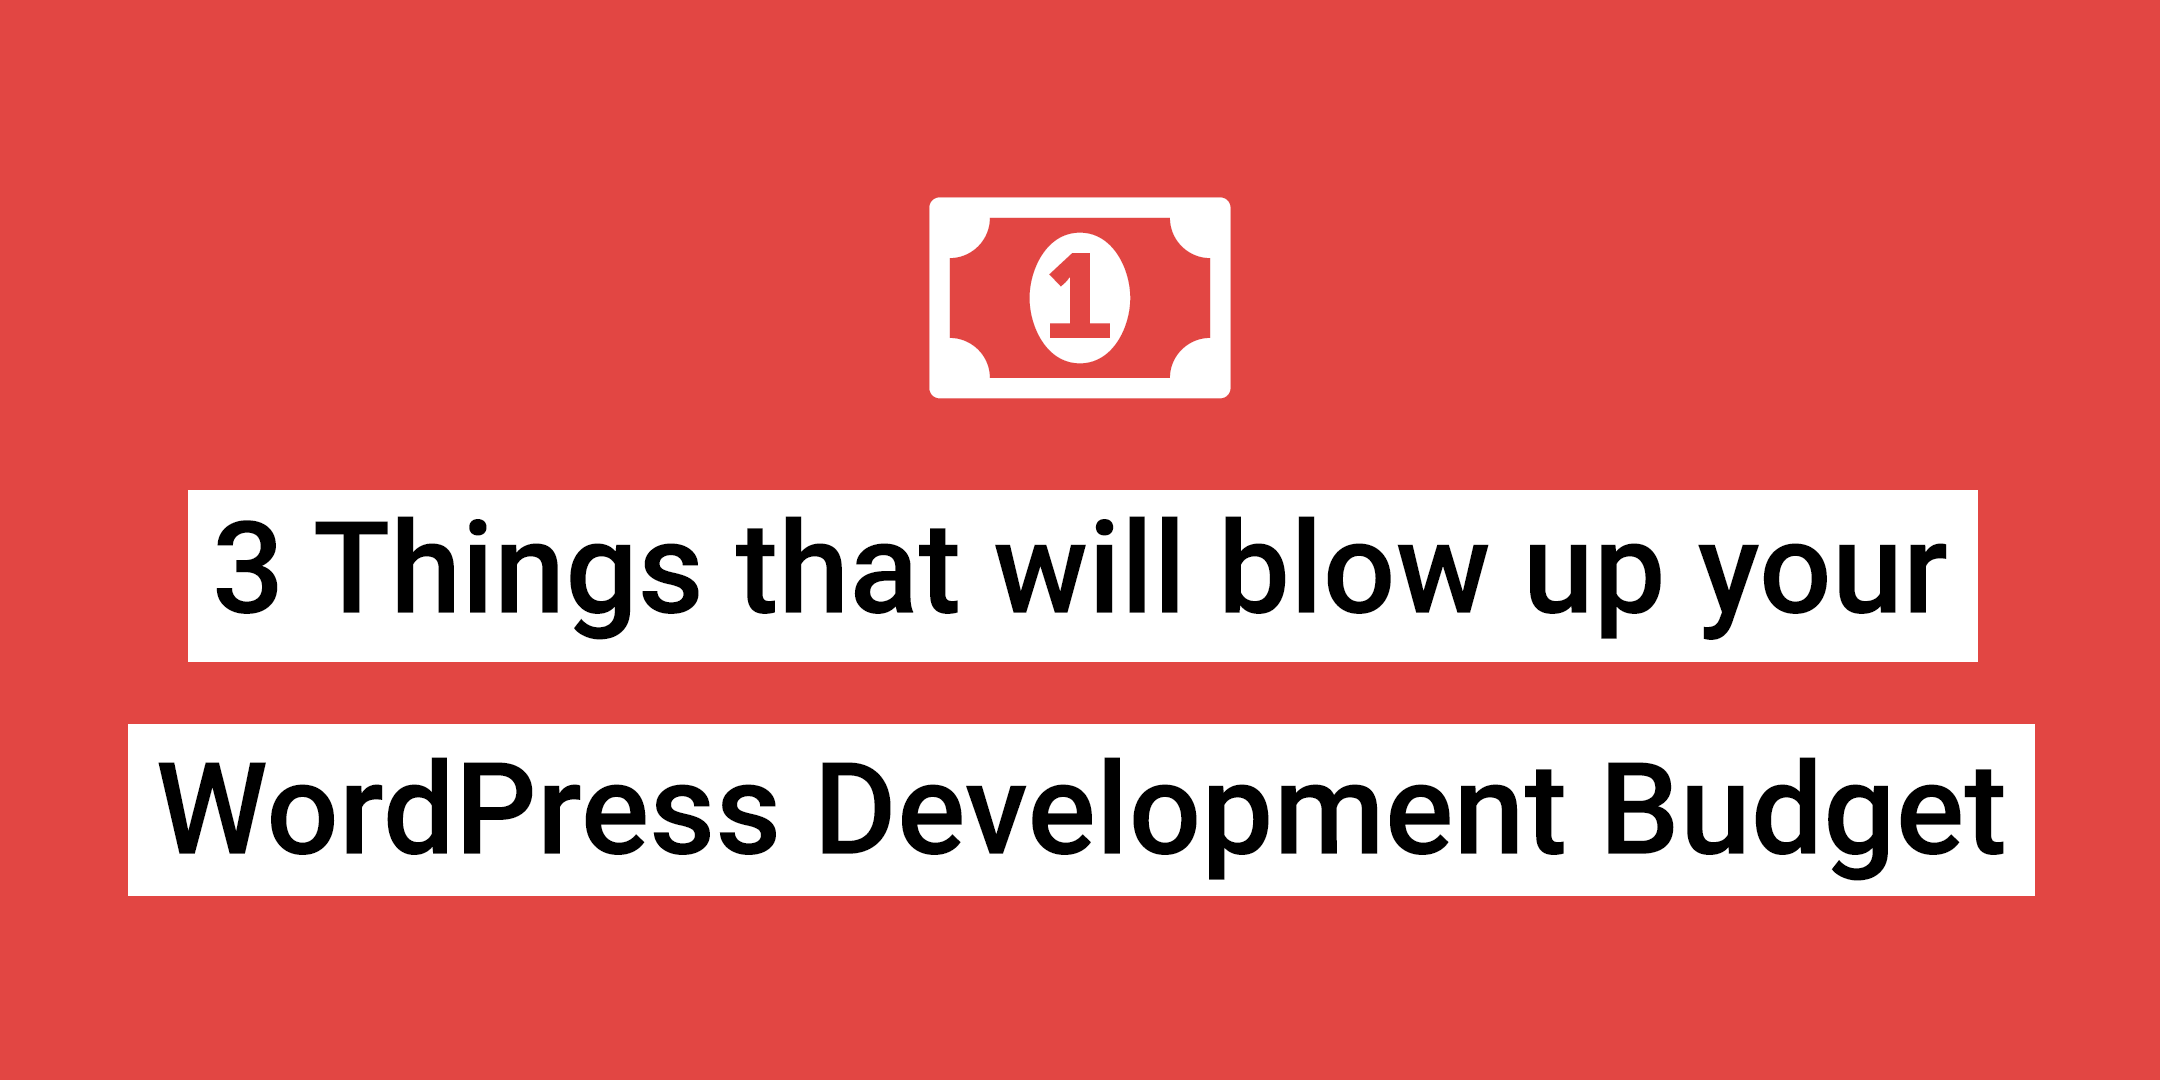 3 Things that will Blow up Your WordPress Development Budget